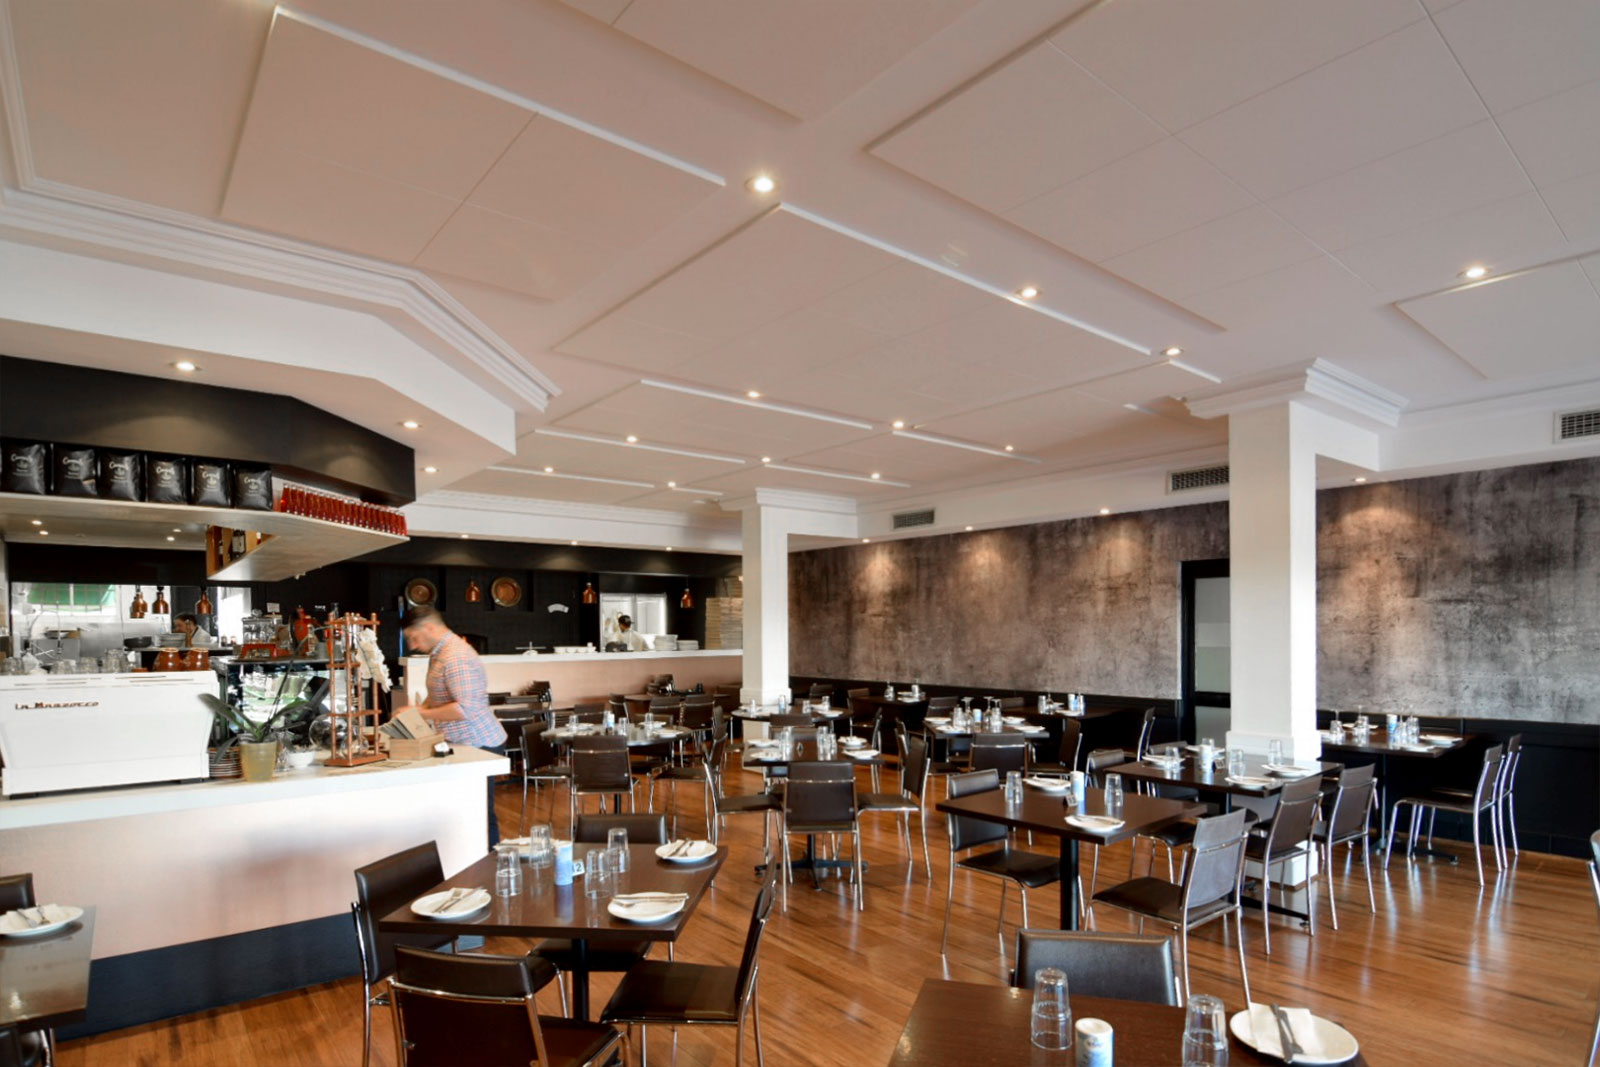 Large restaurant with soundproofing on roof